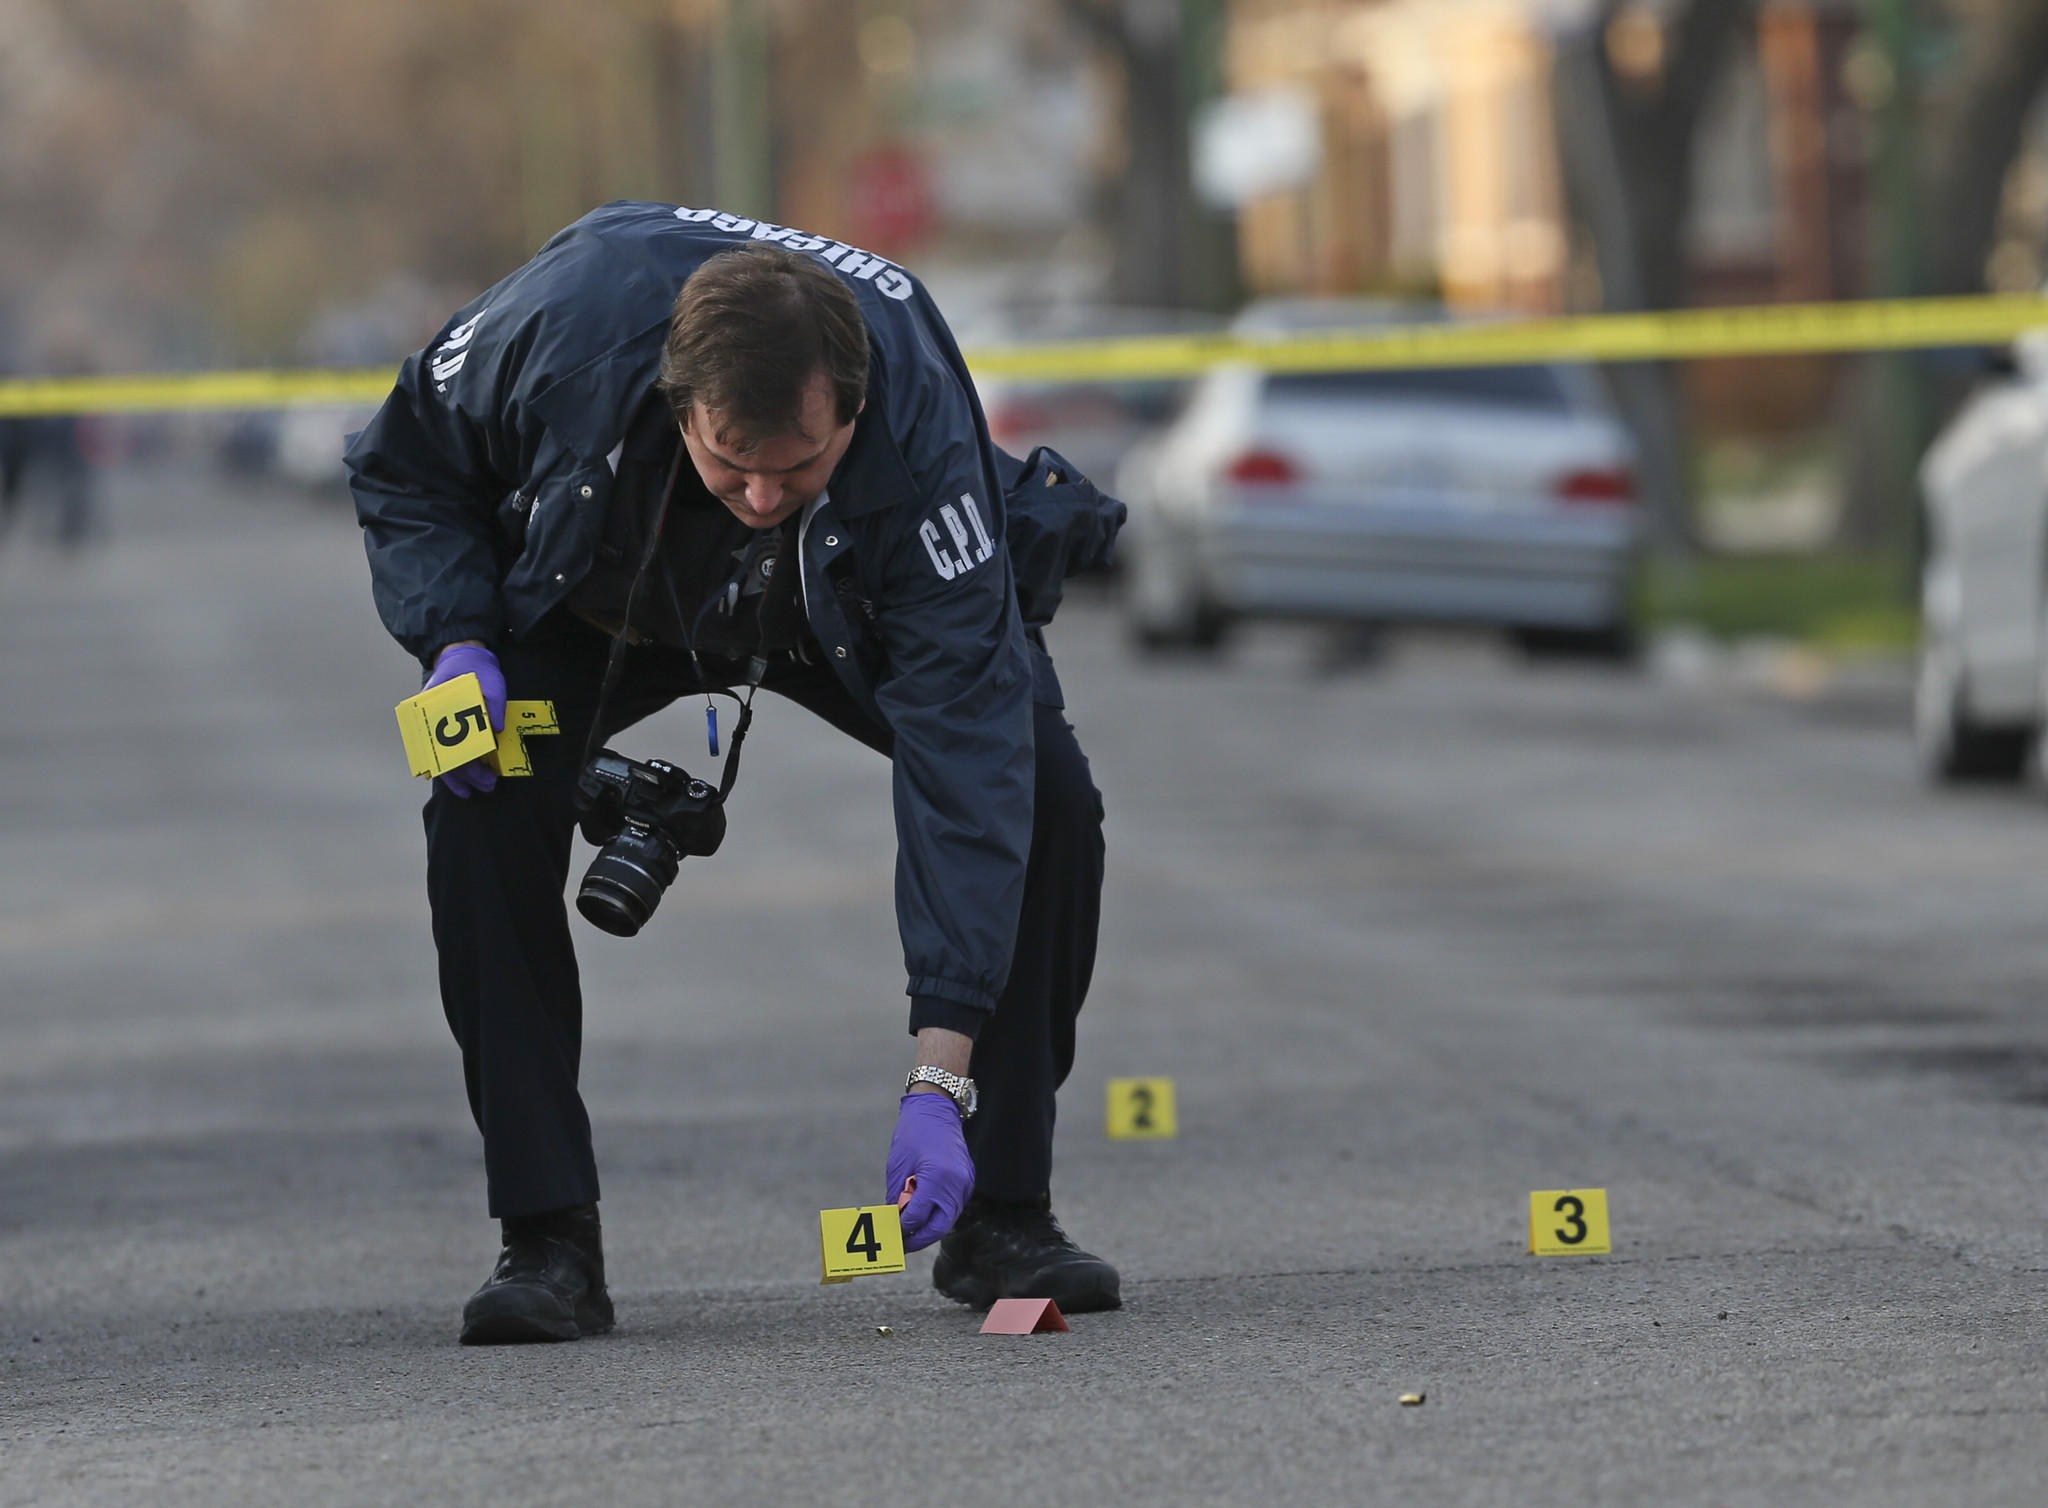 A Chicago police department evidence technician marks spent bullet casings while investigating the scene of a shooting at 85th Street and Hermitage Avenue, in Chicago.